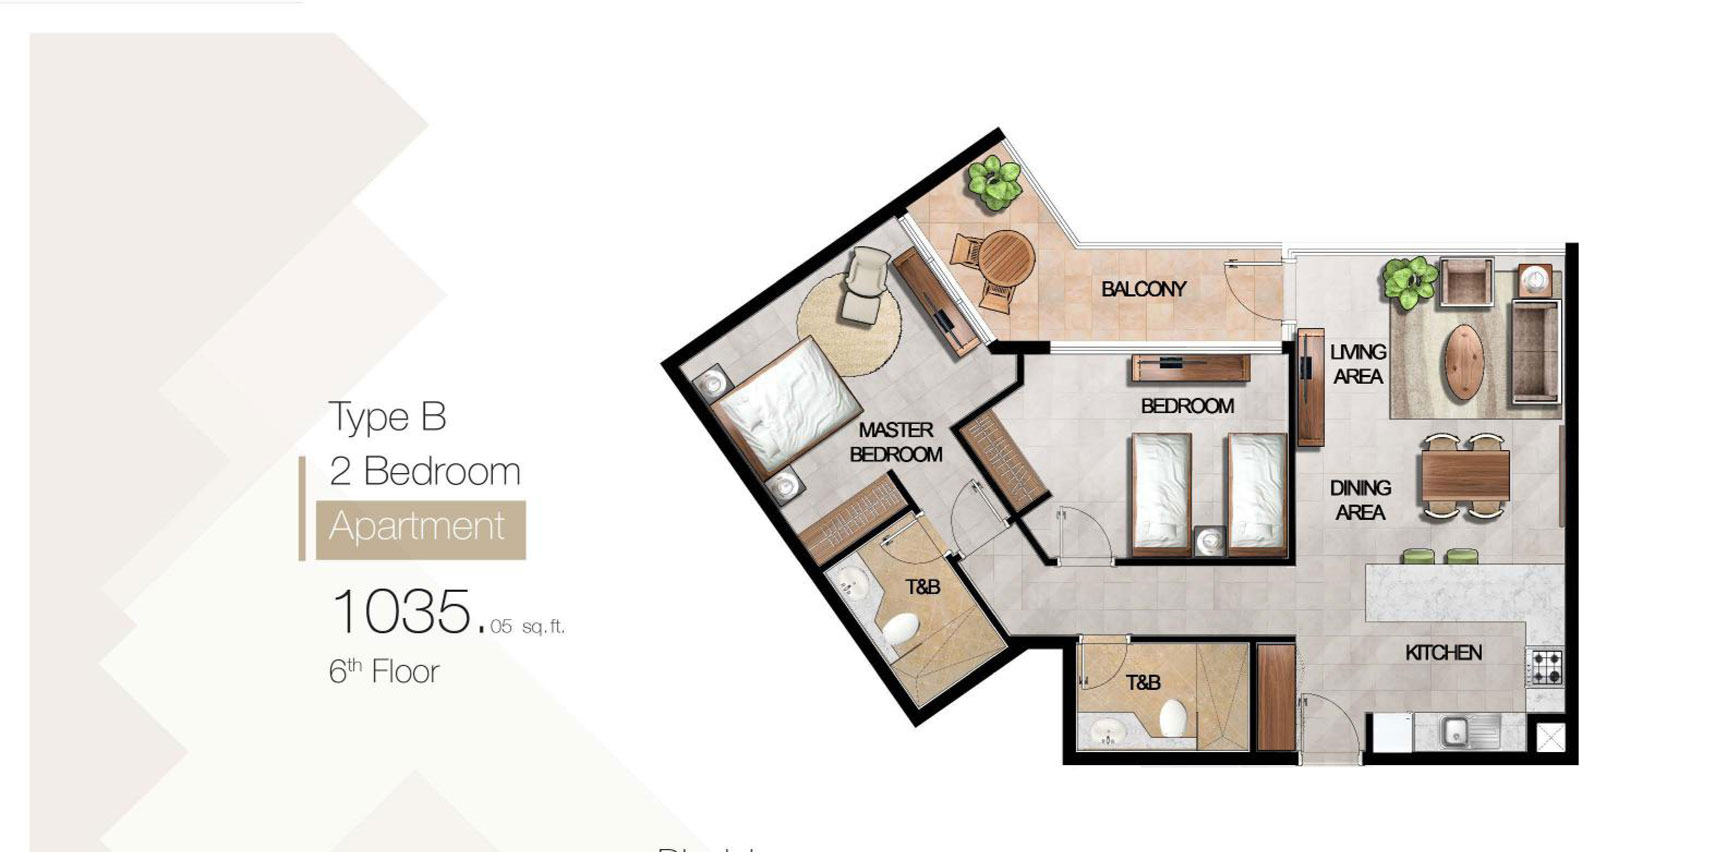 2 Bedroom Type B Size 1035.05 sq.ft